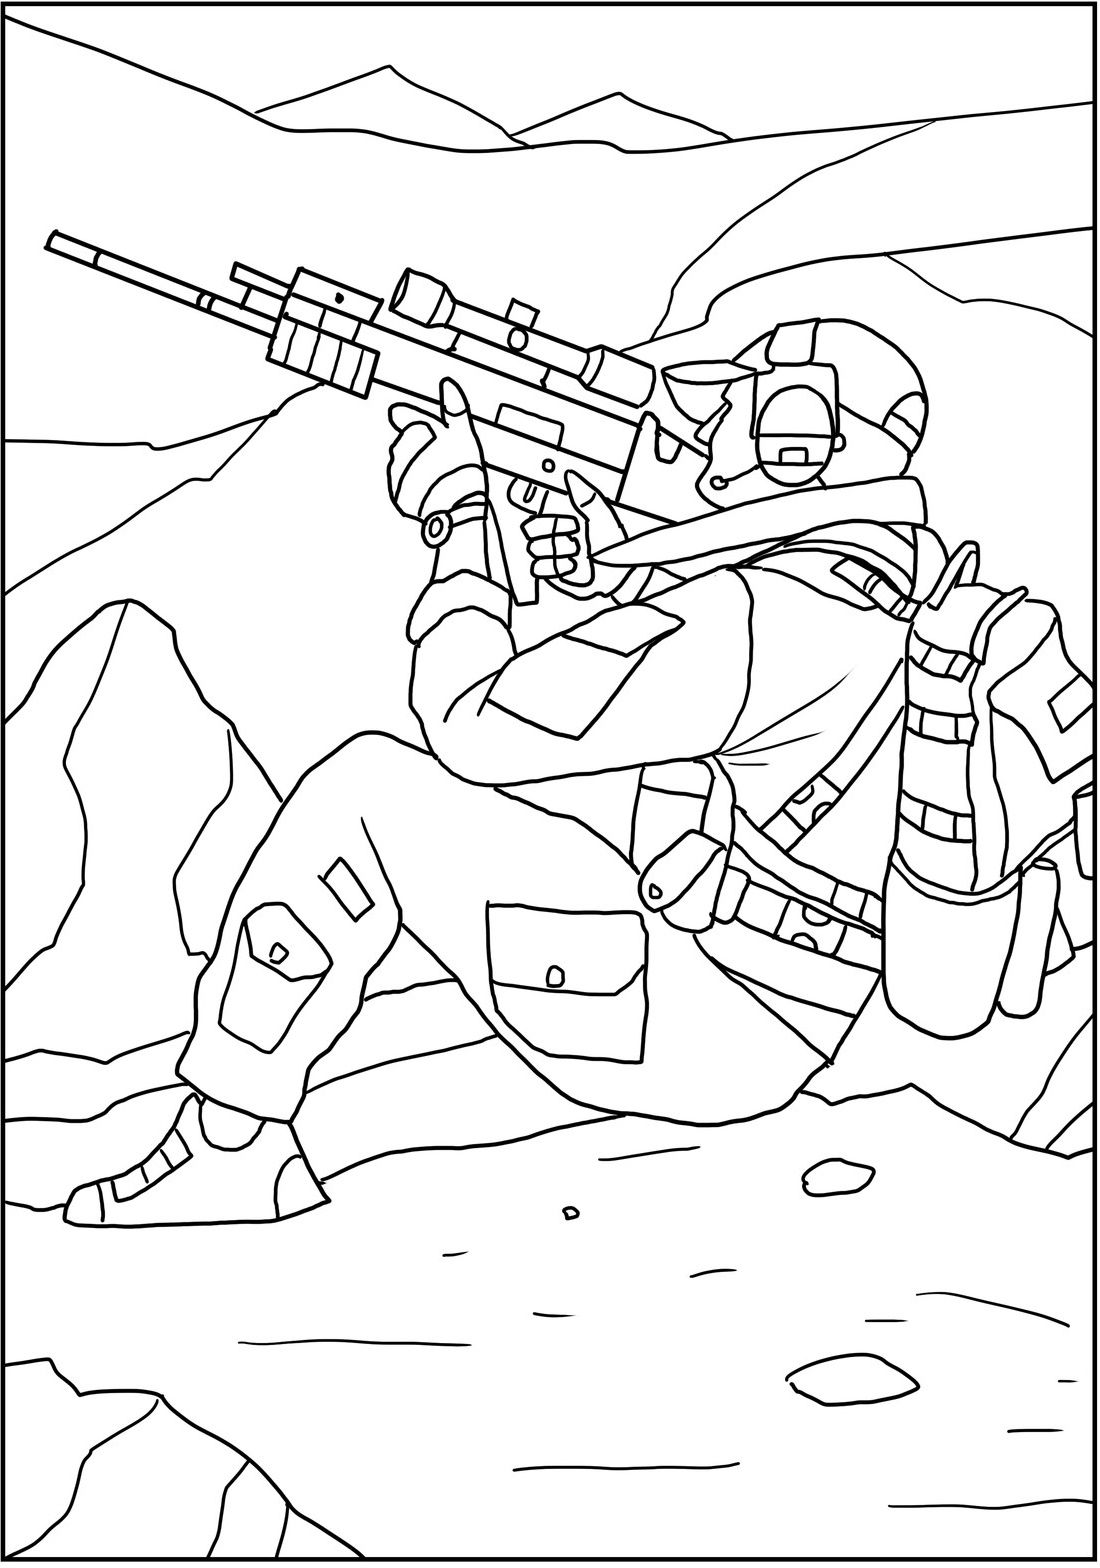 Special Forces Coloring Book Coloring Books Mermaid Coloring Pages Military Drawings